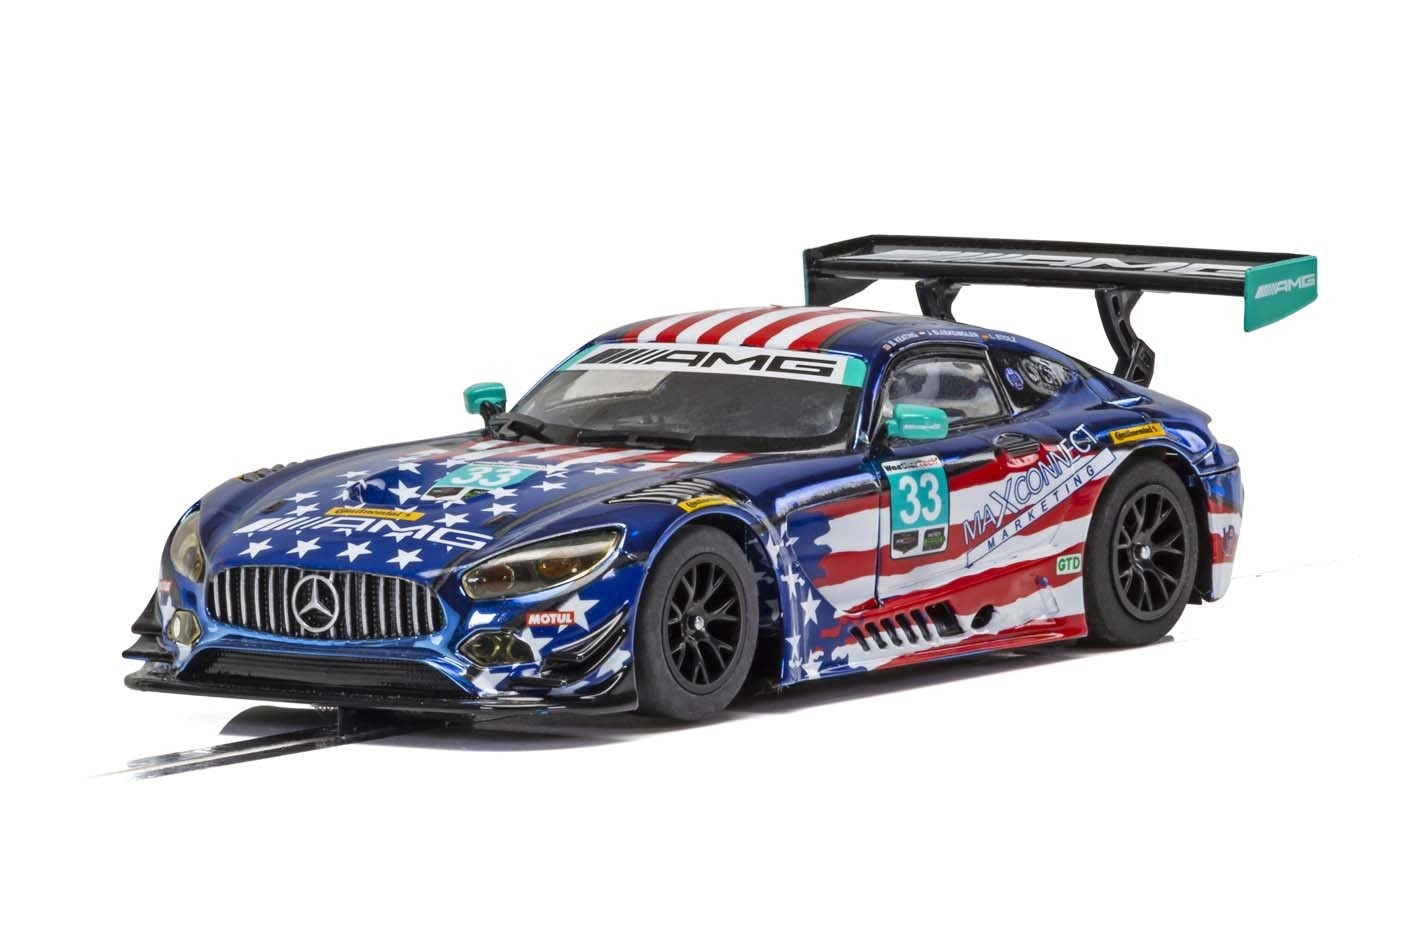 Mercedes AMG GT3, Riley Motorsports Team 1/32 Slot Car